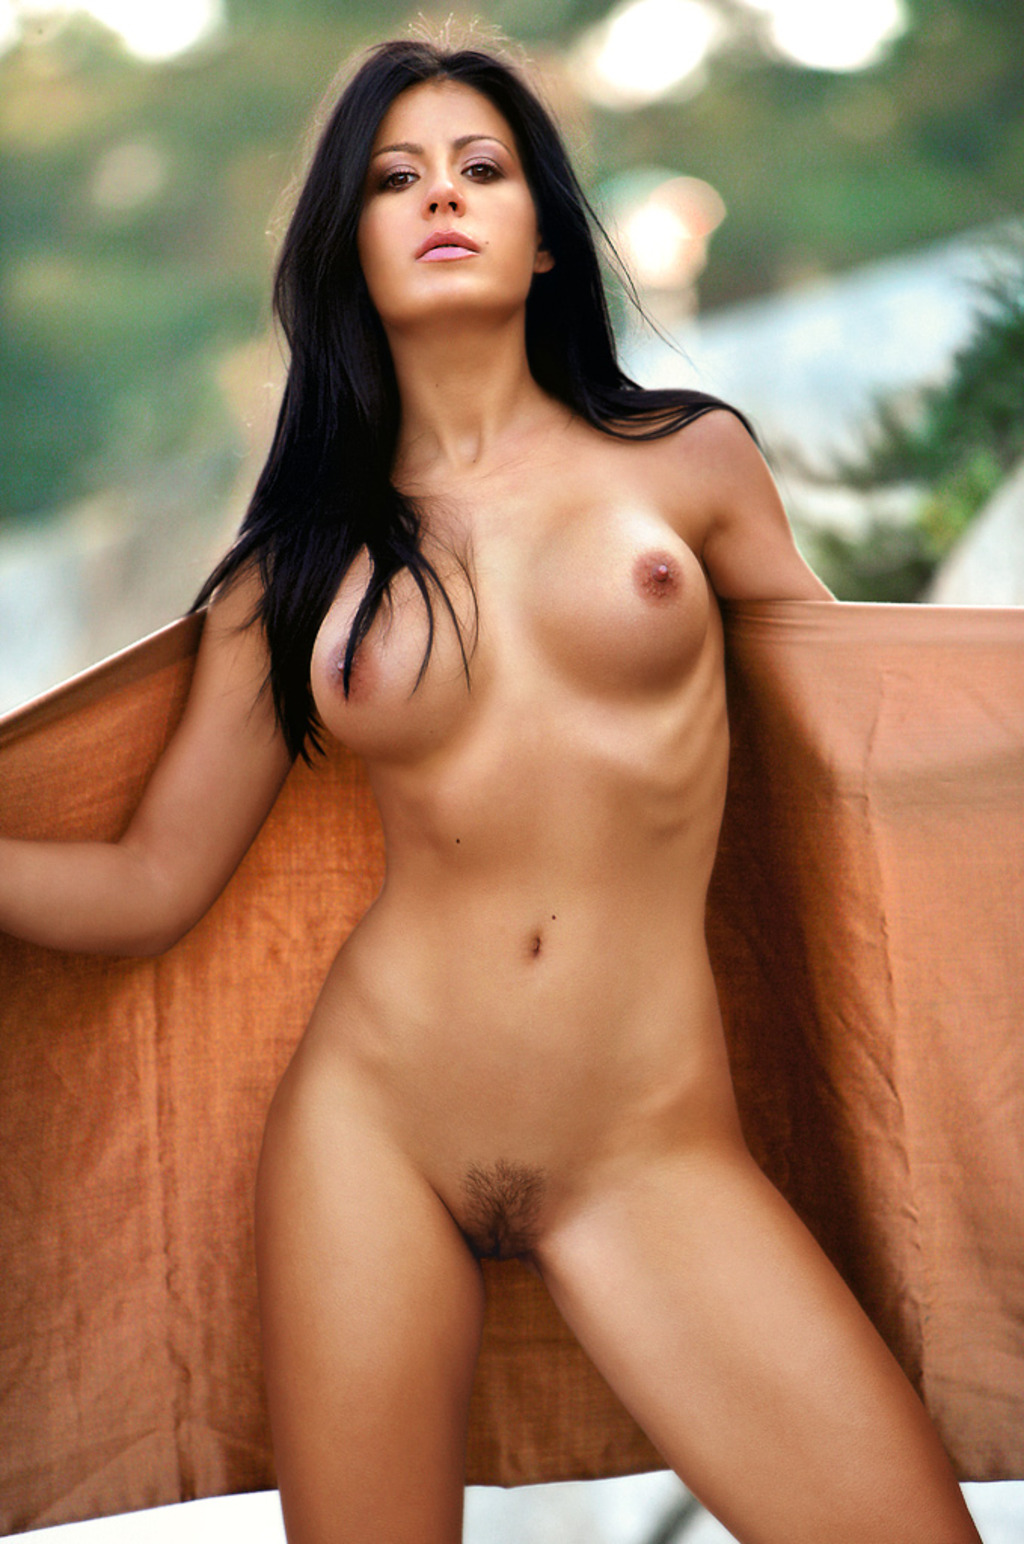 Tina Kovacevic - Naked Women | Nude Women | Free Nude Girls